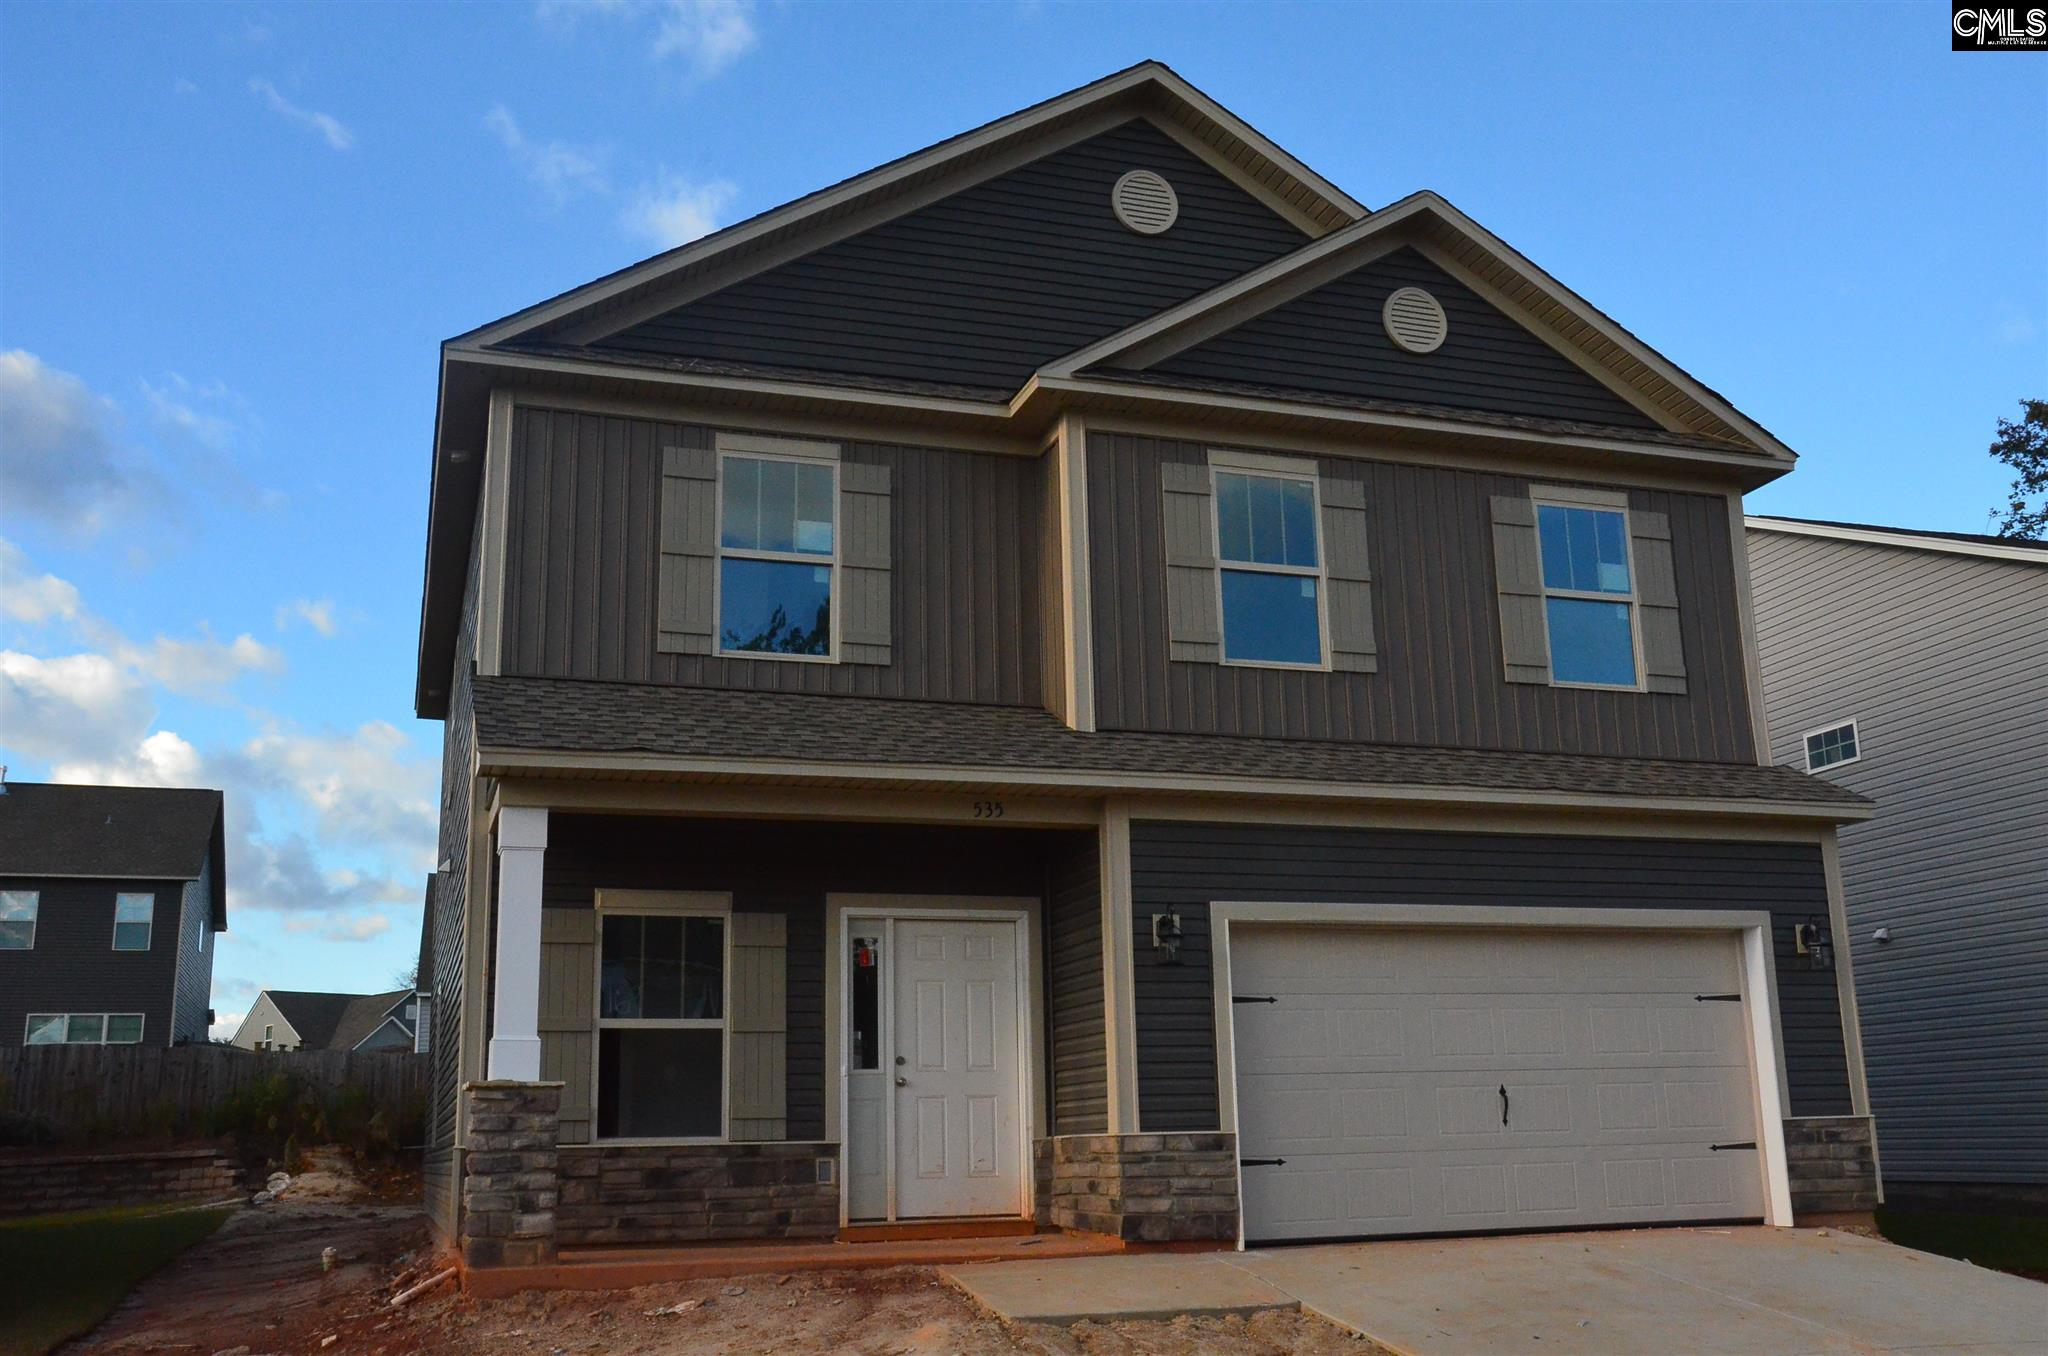 535 Connecticut Chapin, SC 29036